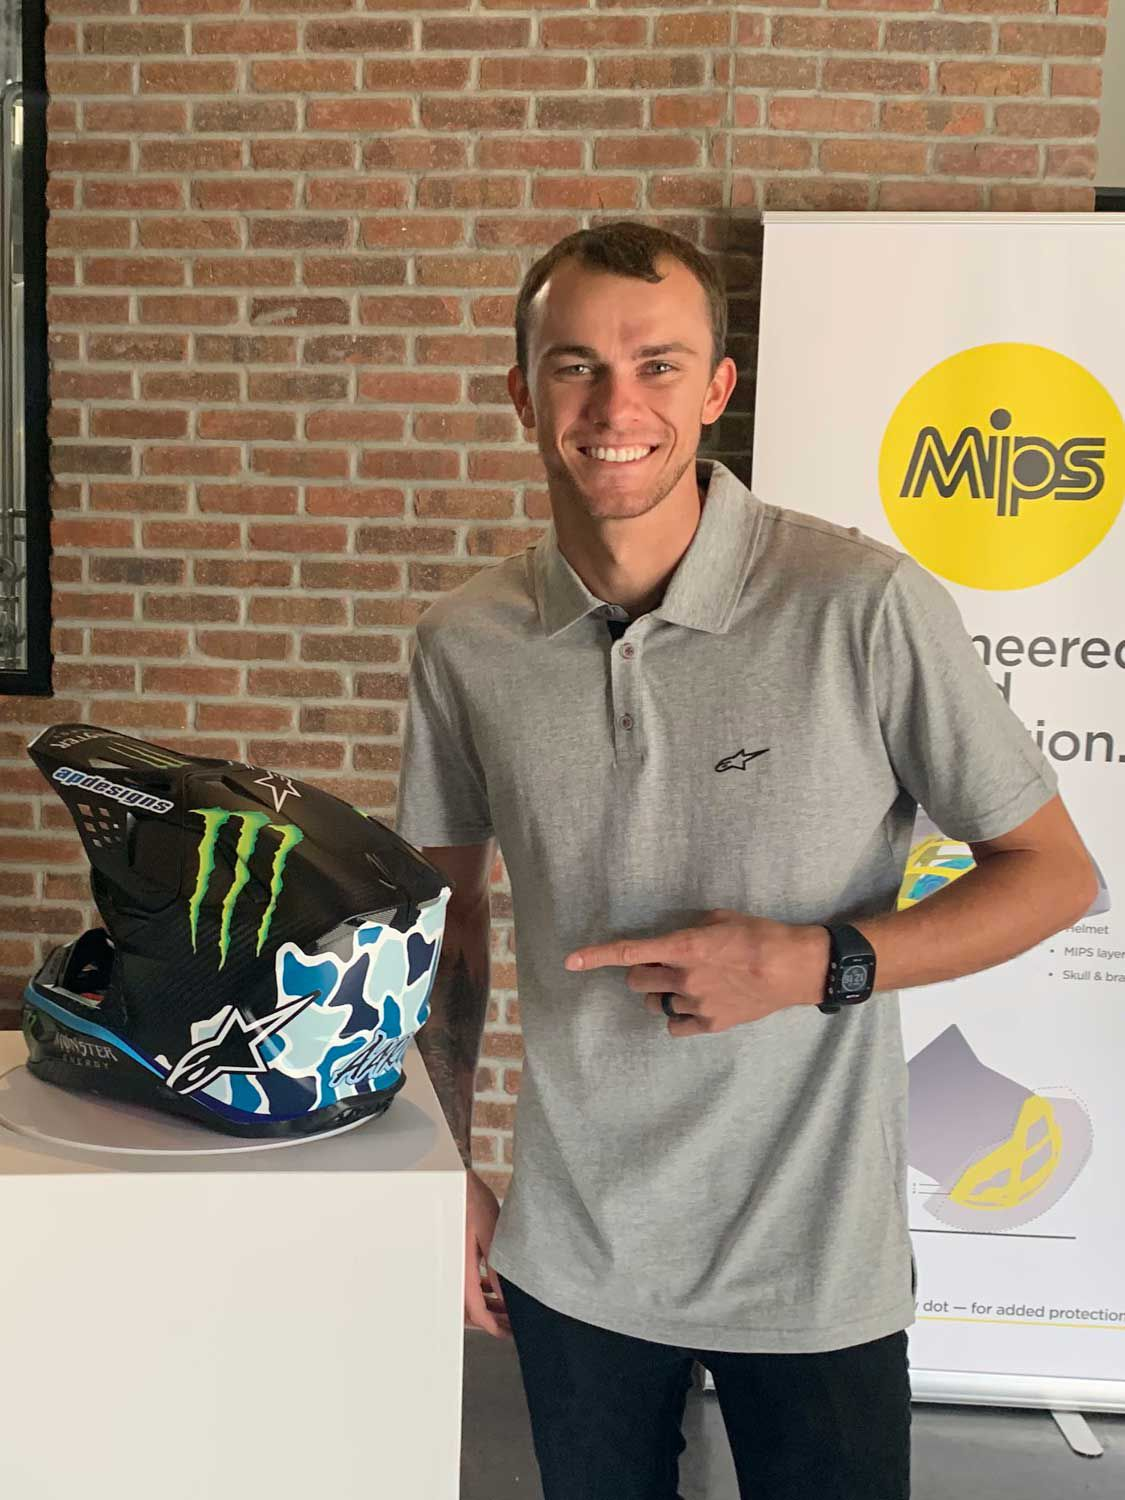 Aaron Plessinger was on hand to debut his new MIPS-equipped lid.